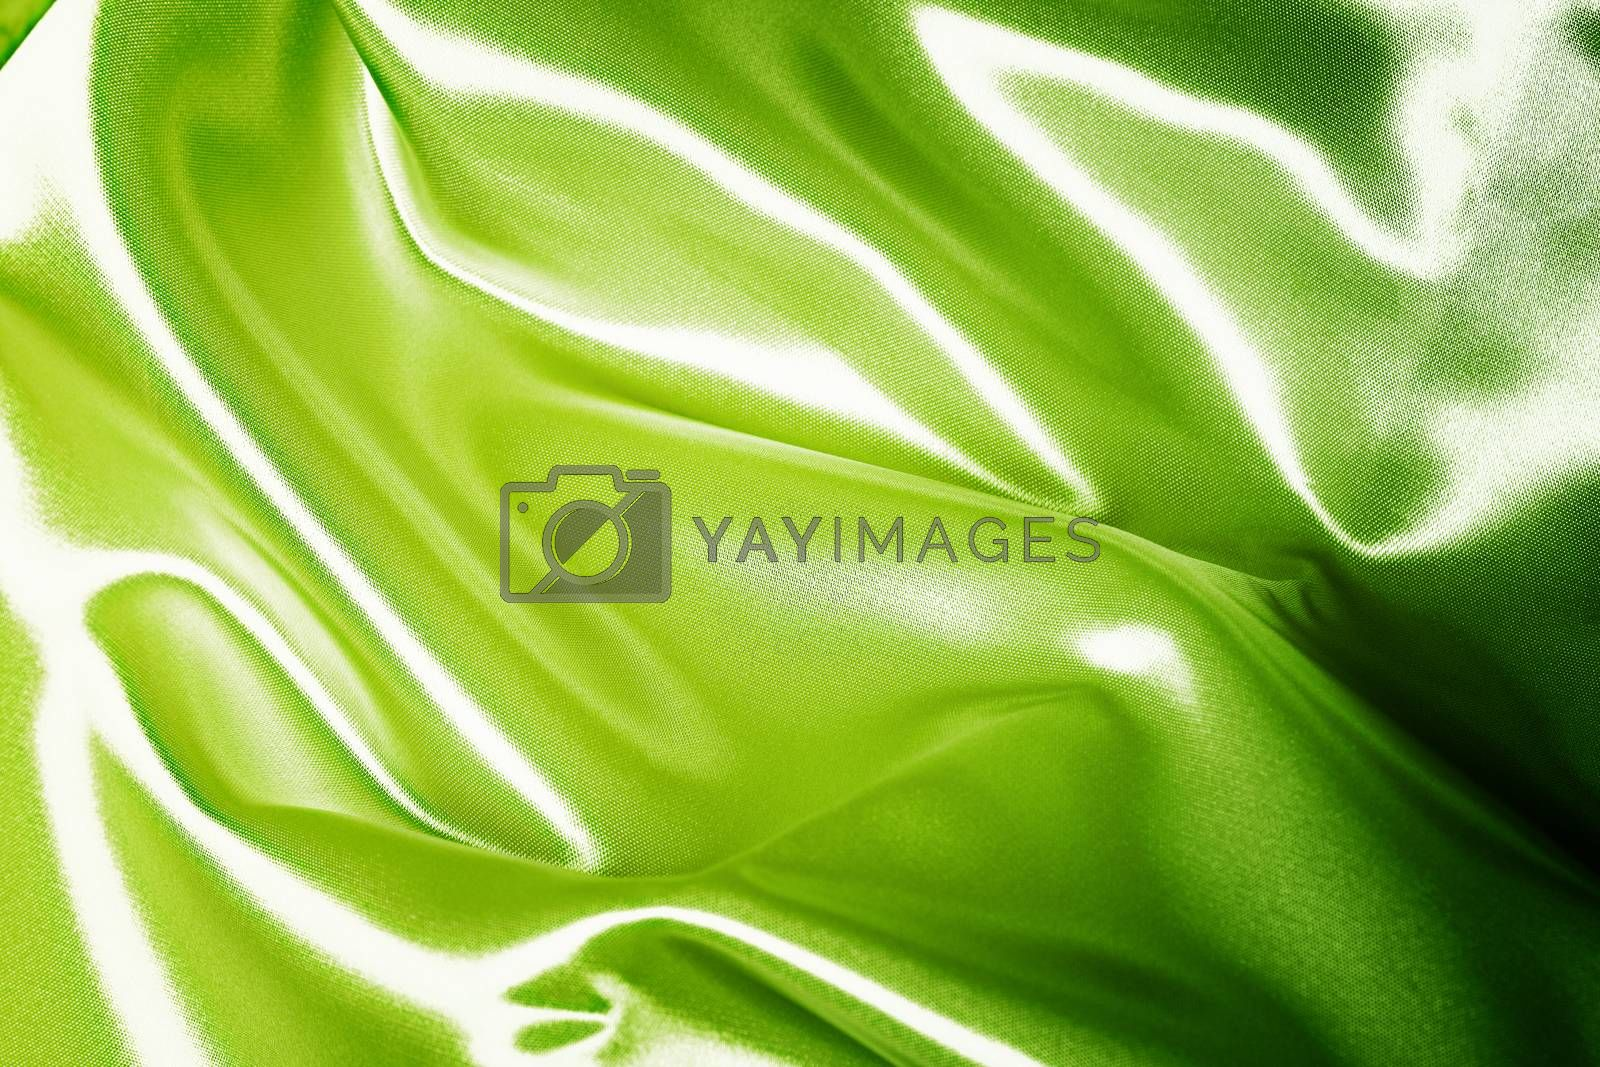 Background of a Green blanket